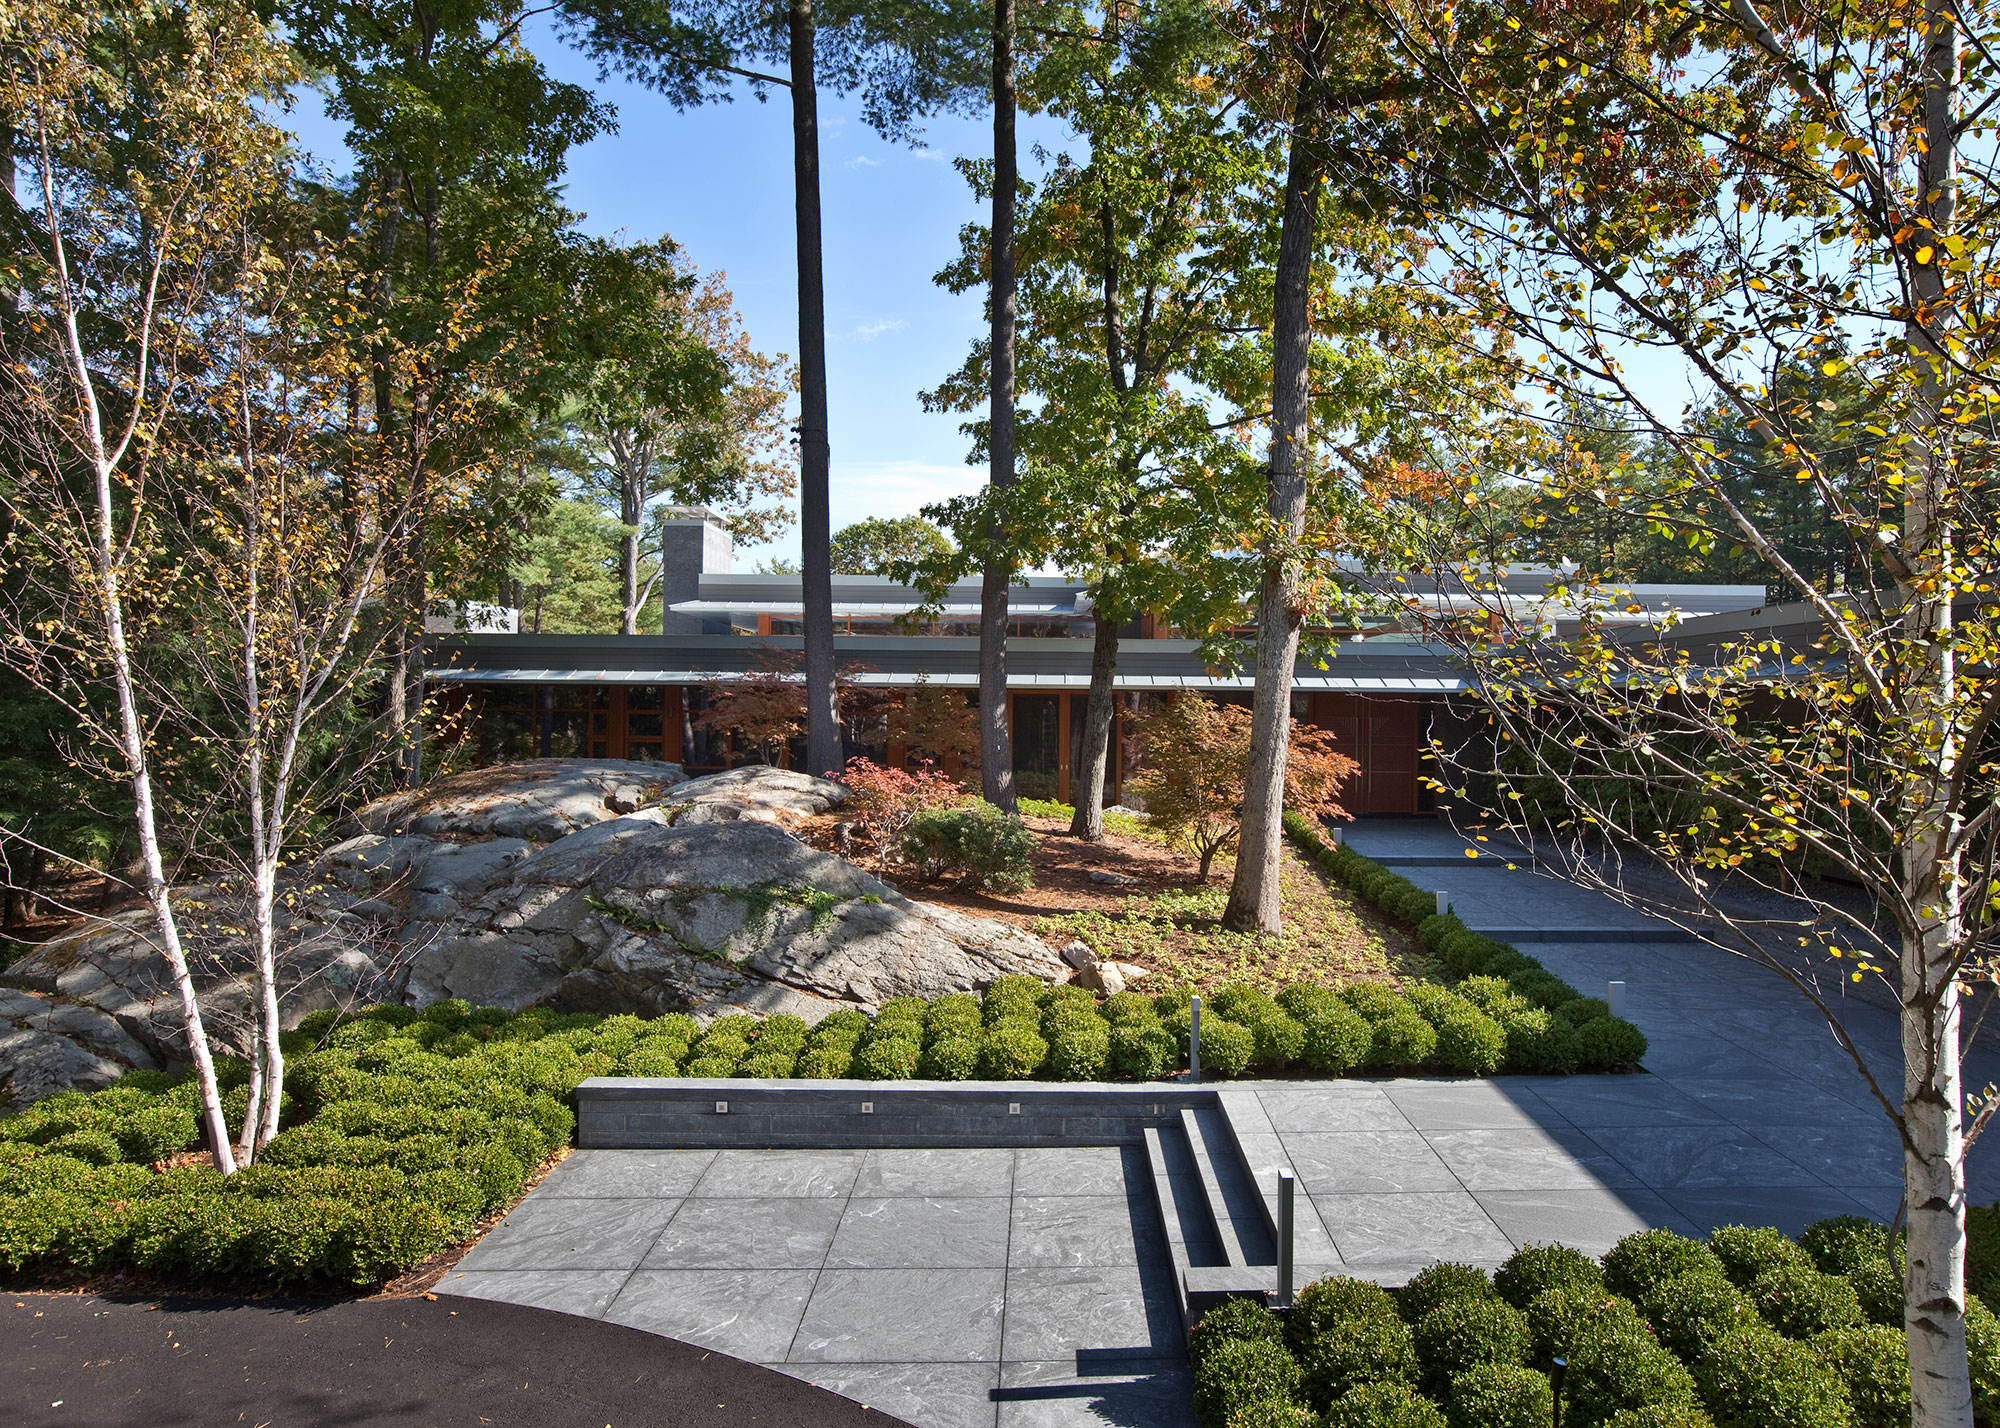 landscaped front entry terrace with ledge and birch trees